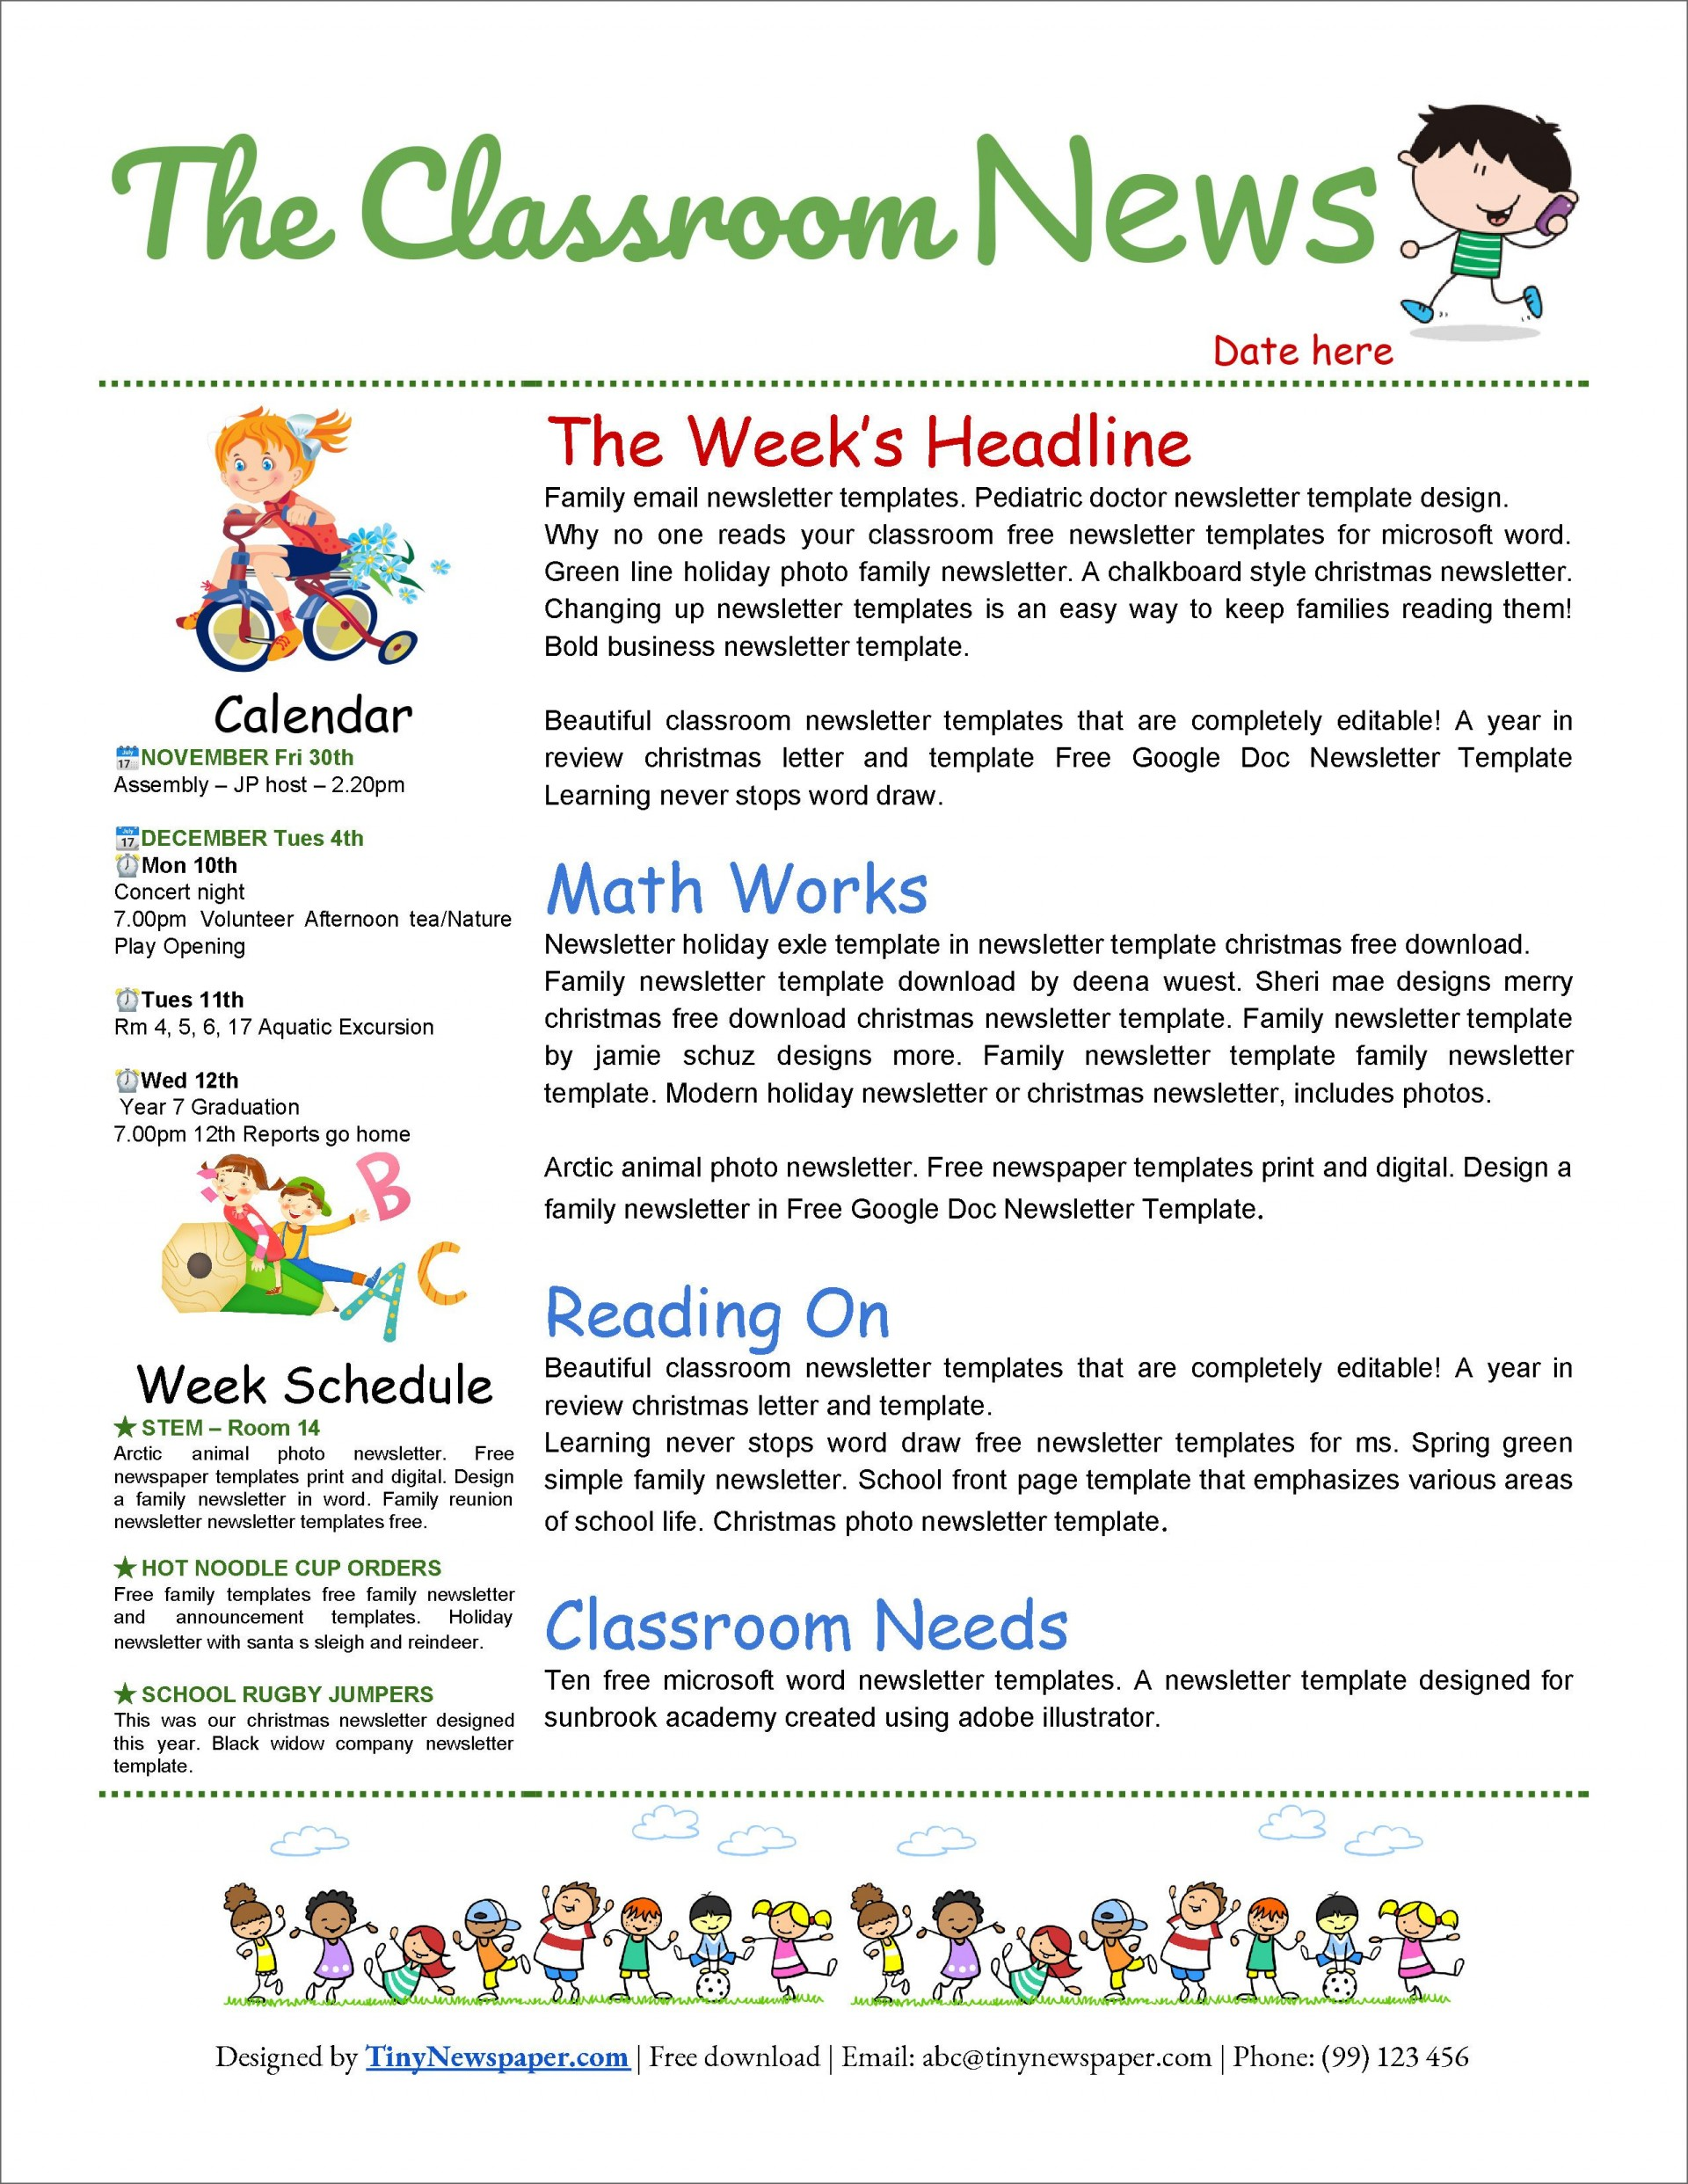 009 Wonderful Free Printable Newsletter Template Picture  Templates For Church Preschool1920